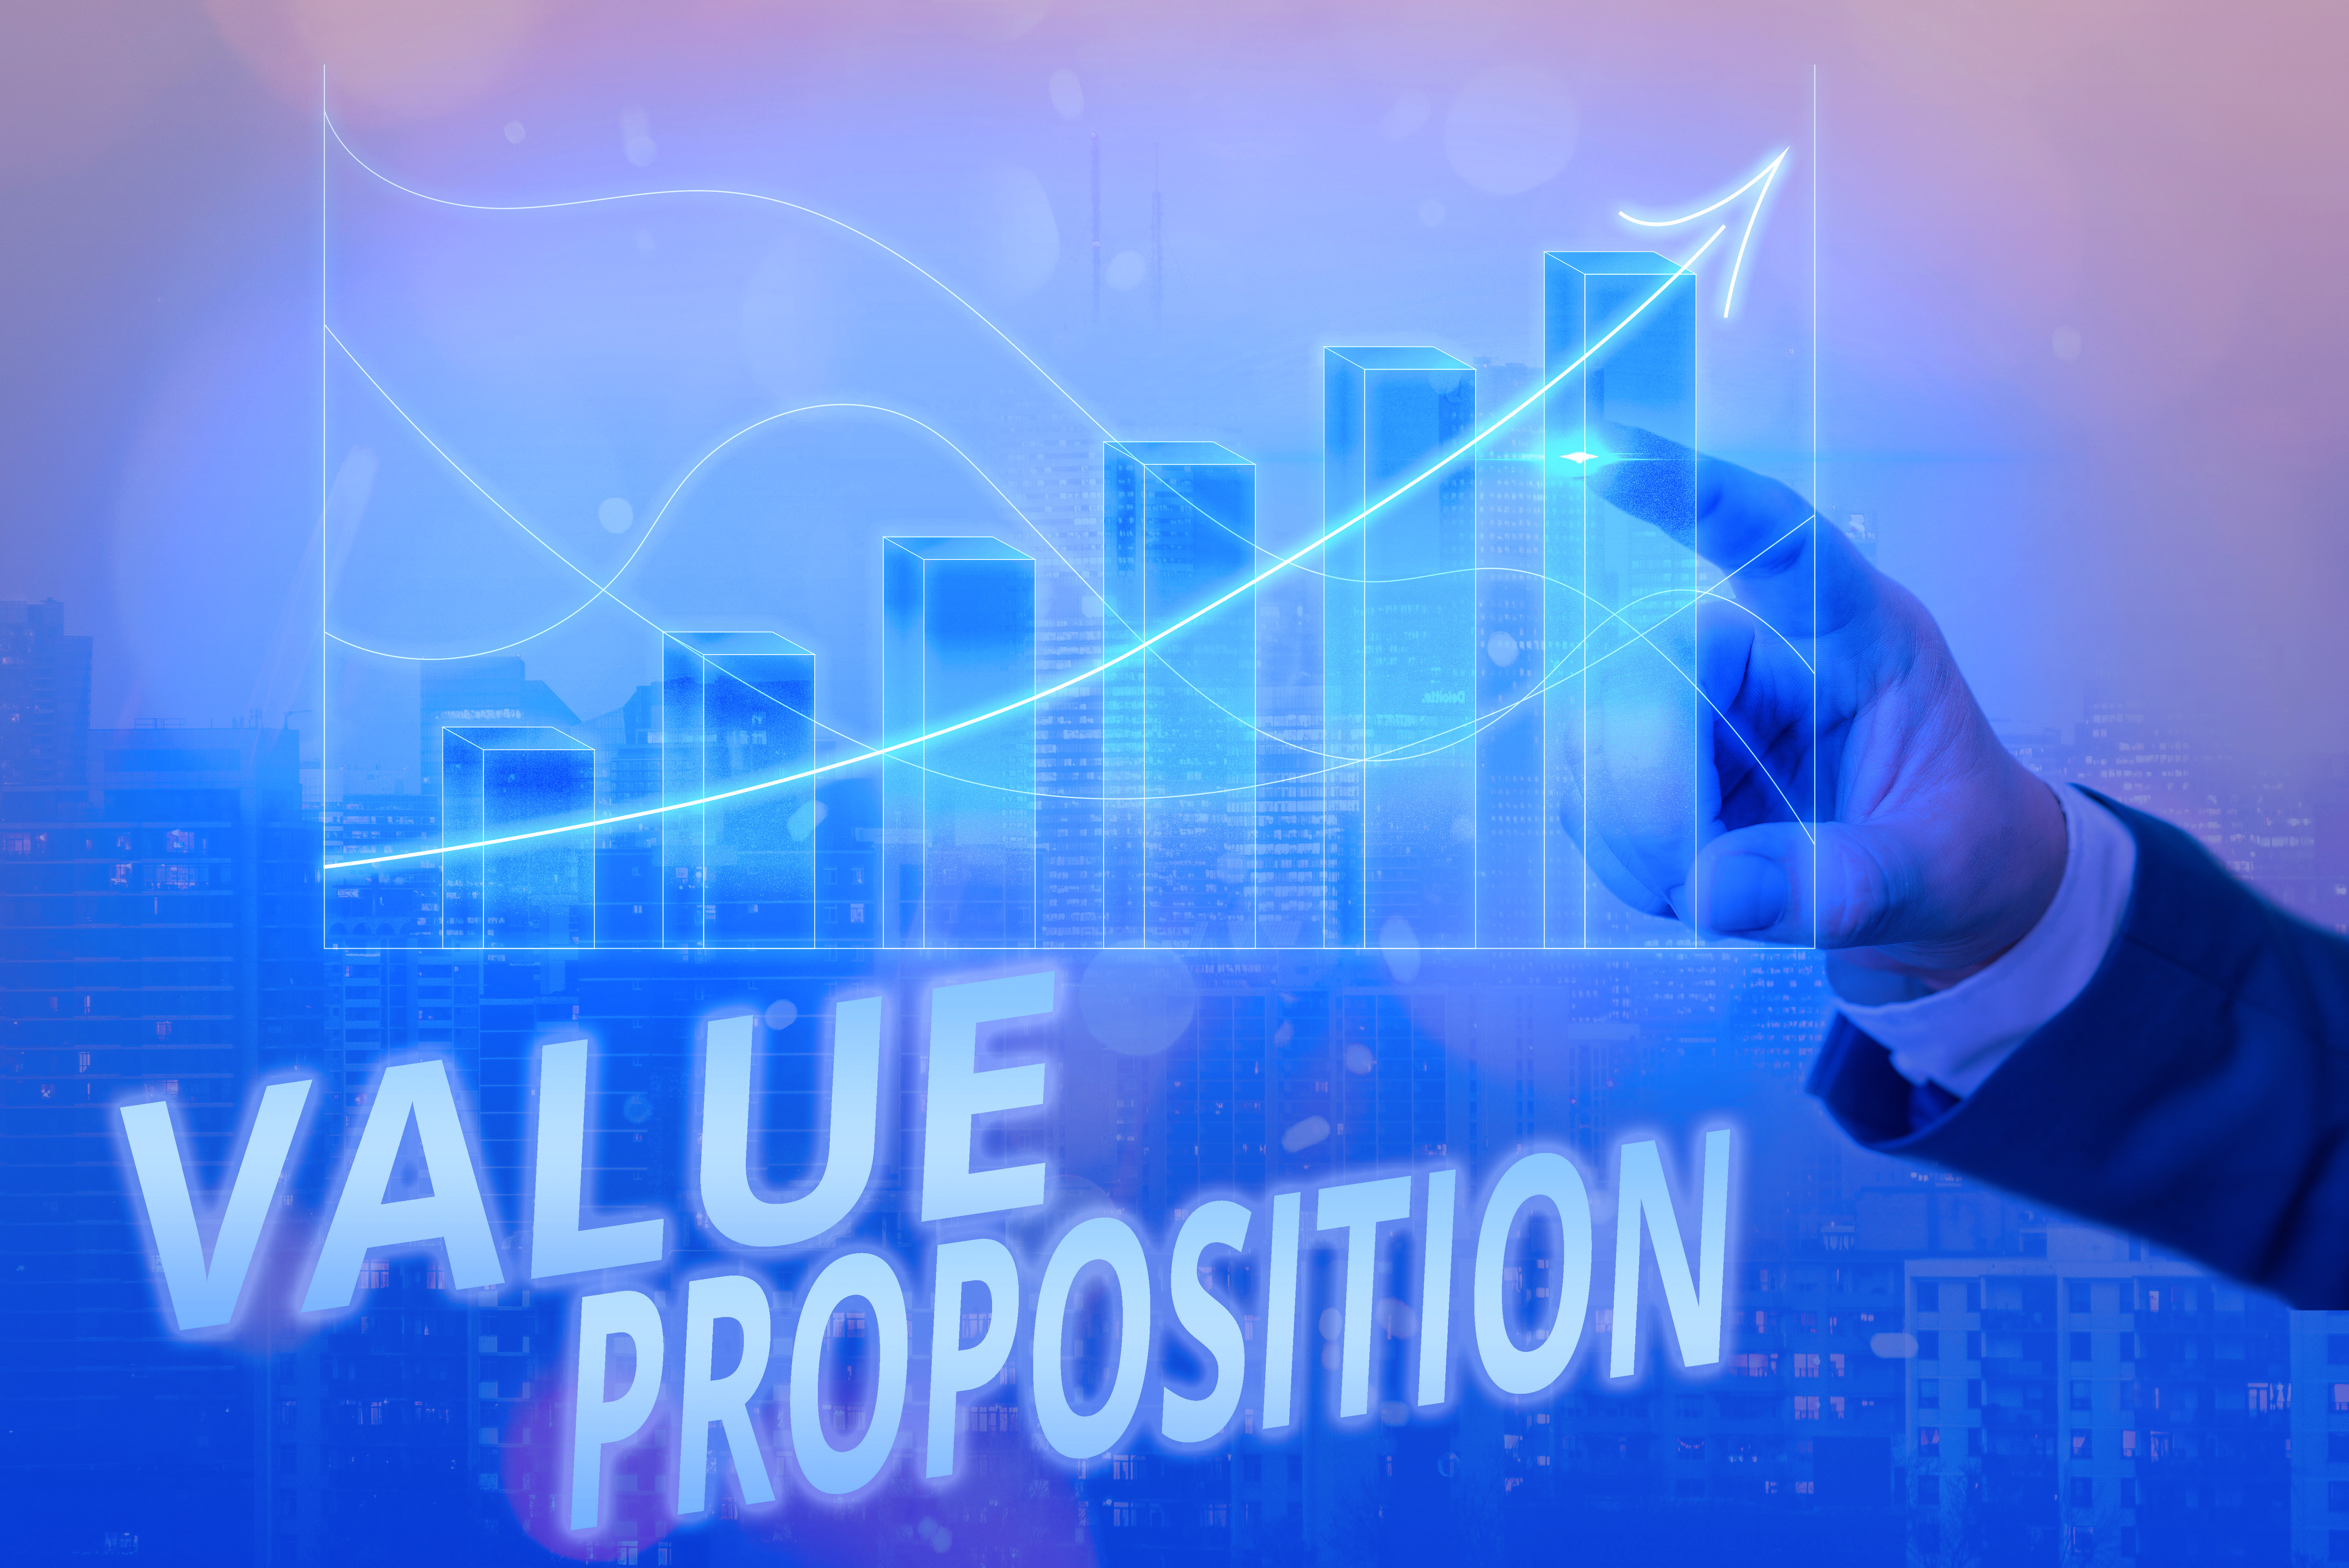 Writing note showing Value Proposition. Business concept for feature intended to make a company or product attractive Arrow symbol going upward showing significant achievement